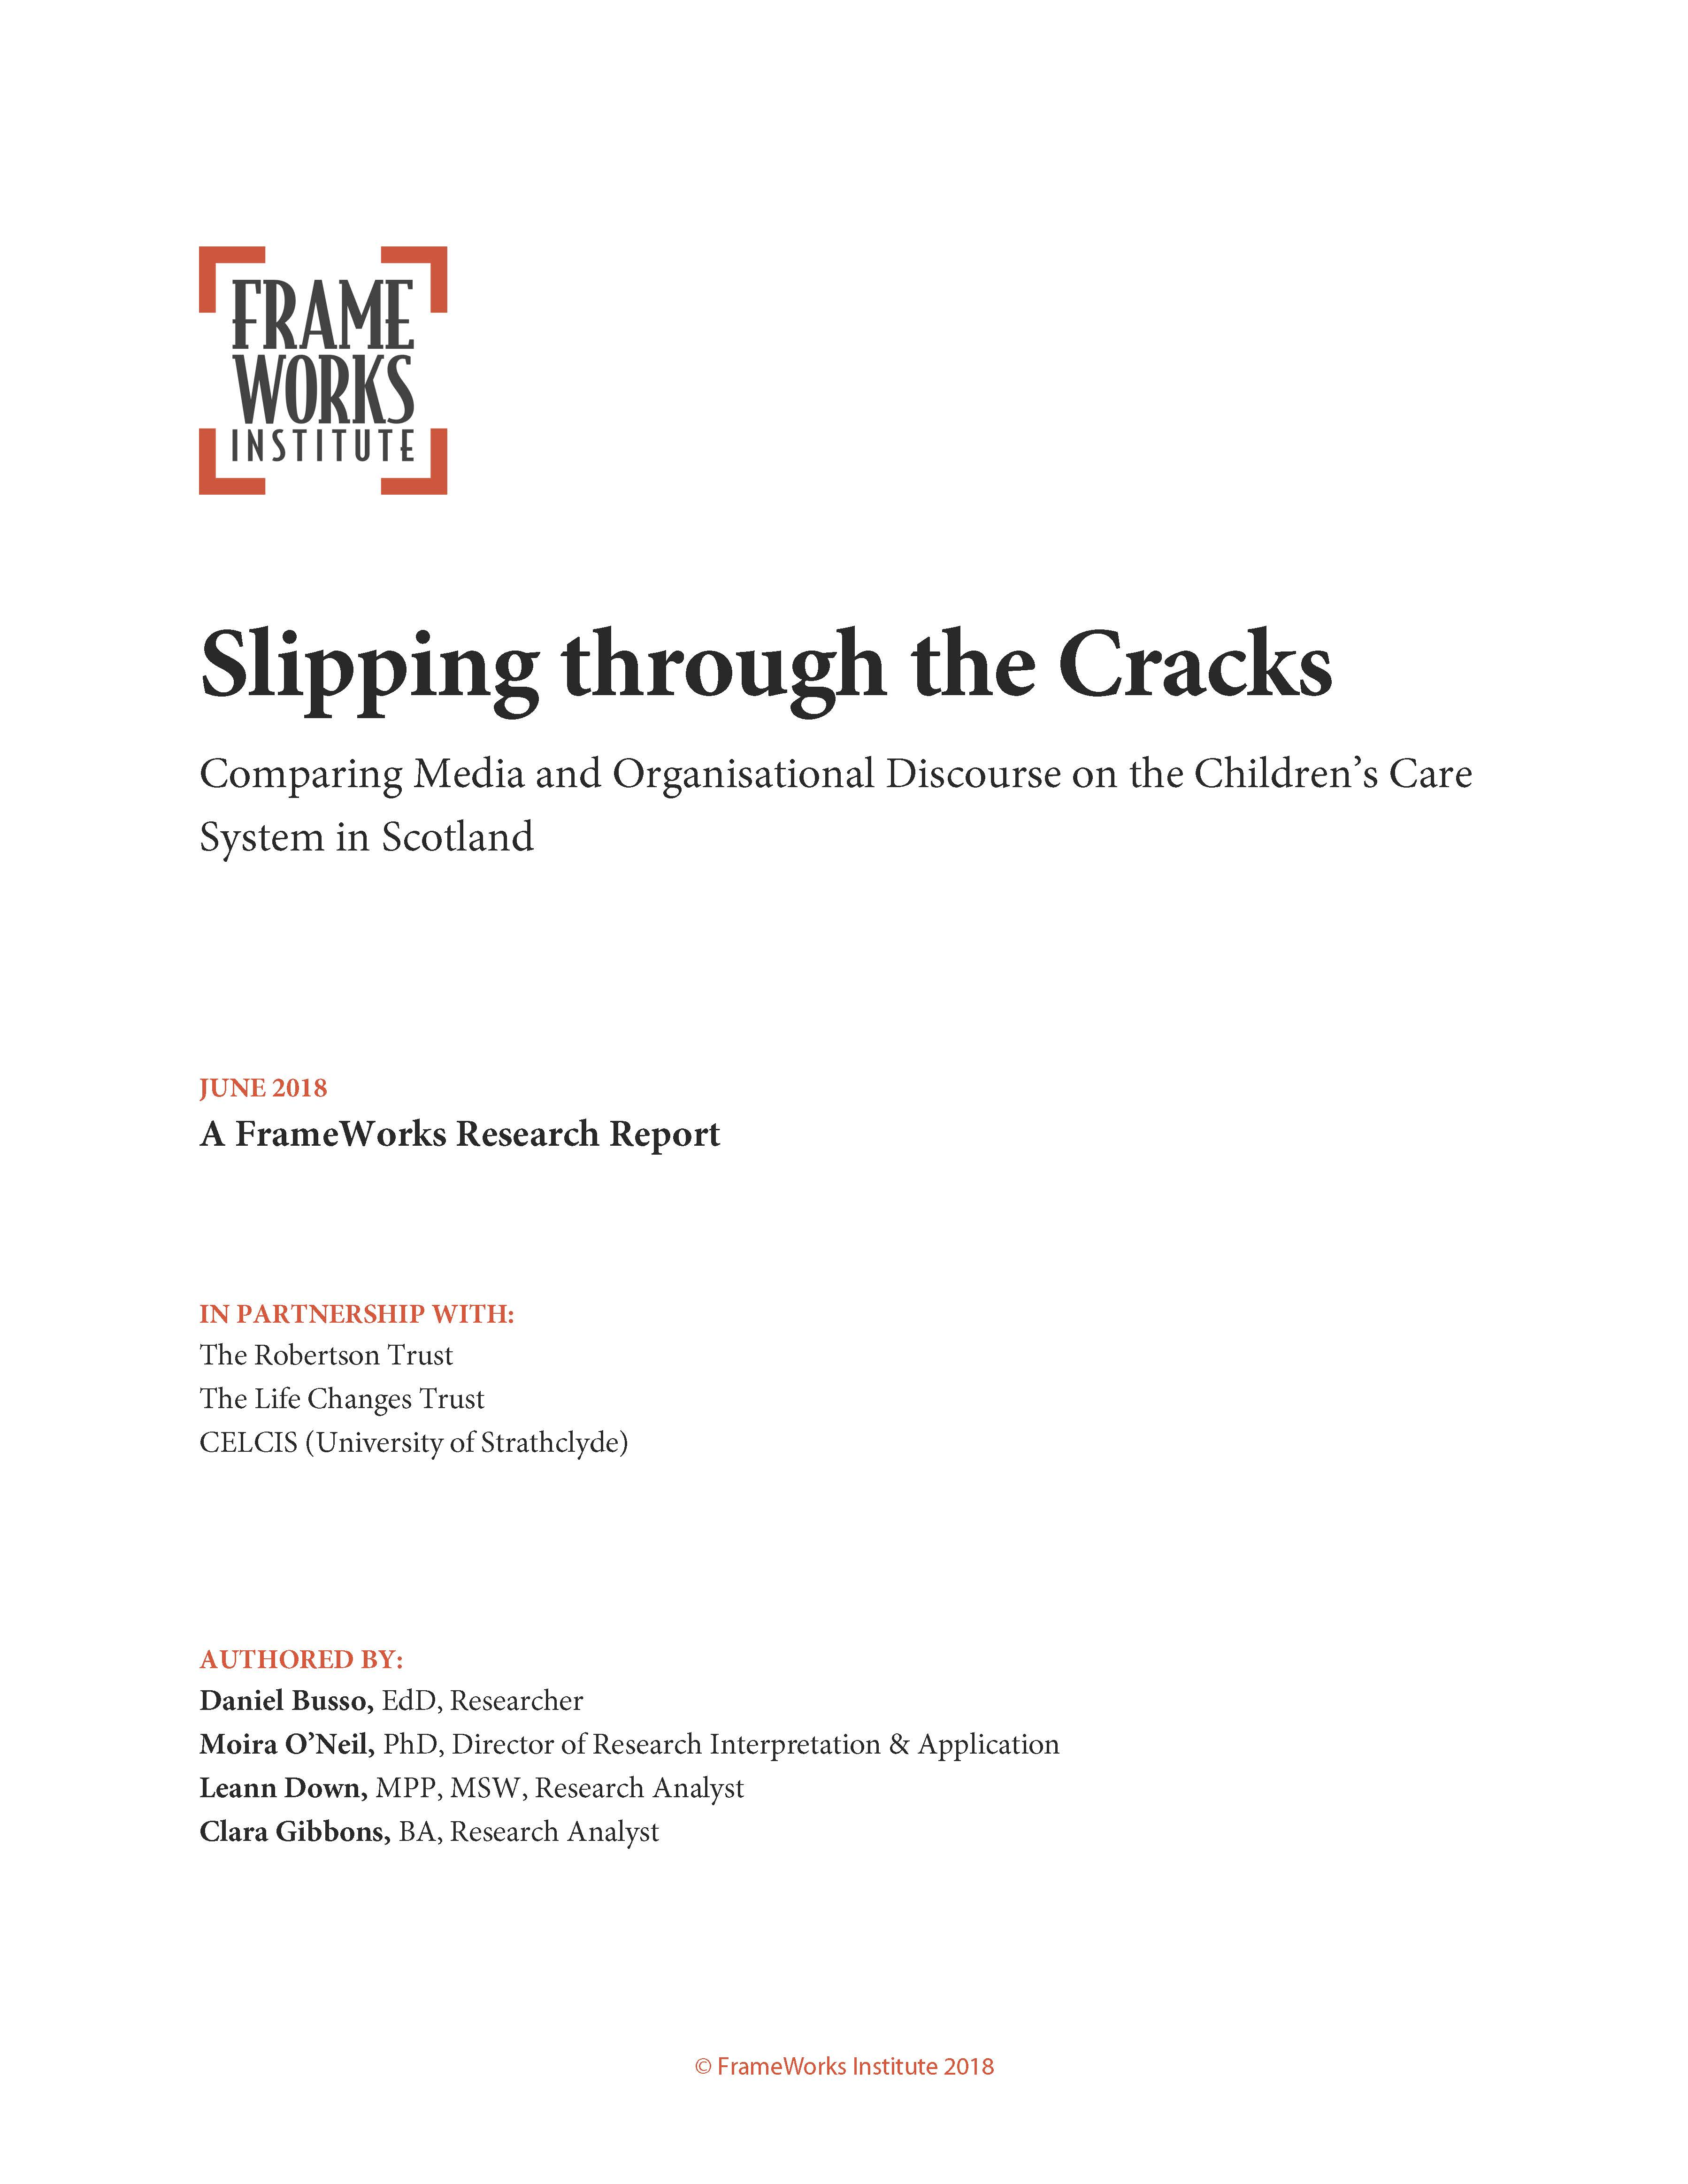 Slipping through the Cracks: Comparing Media and Organisational Discourse on the Children's Care System in Scotland